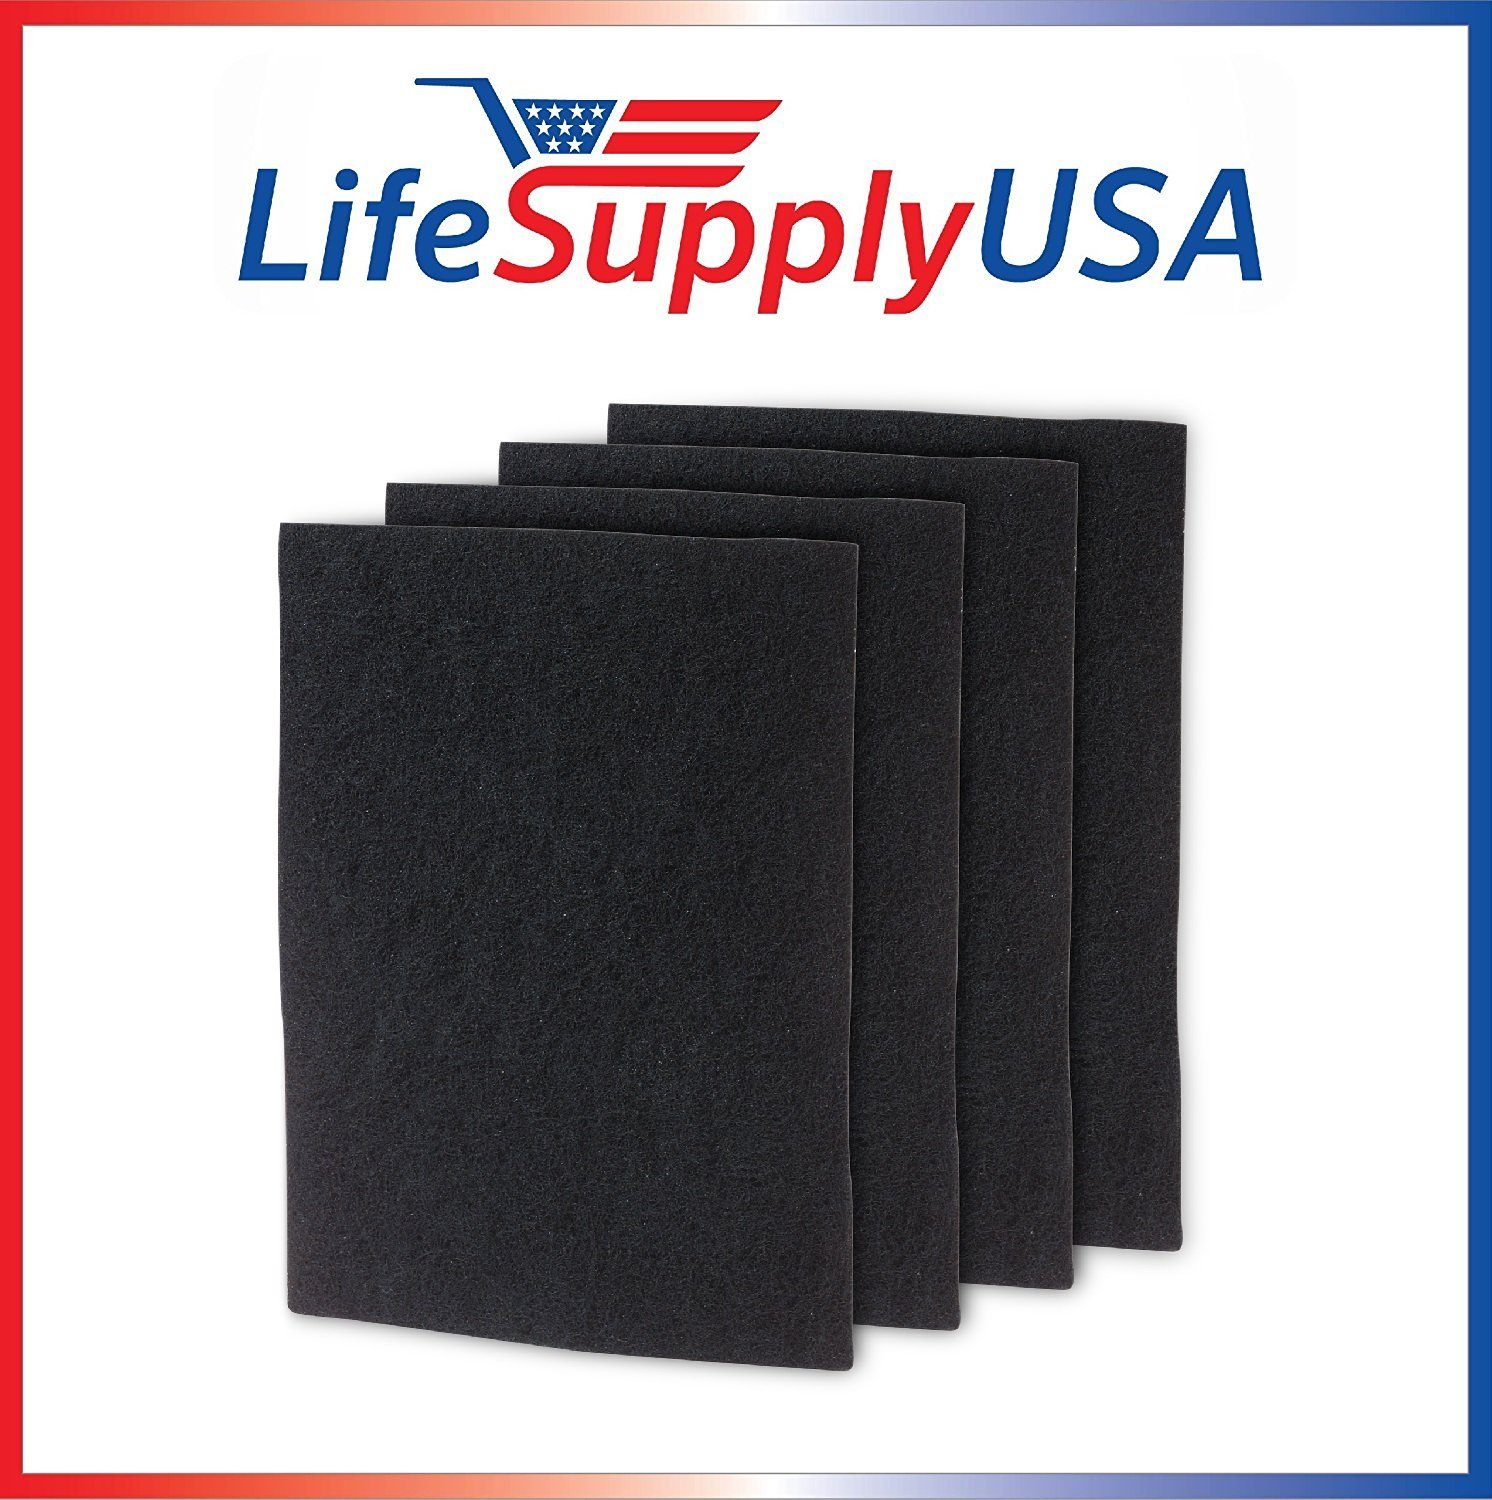 lifesupplyusa 4パックカーボンpre-filters交換ホームズhapf60、Bionaire a1260 C、一般Electric Smartaire GE 106753、フィルタC B07D7HY646